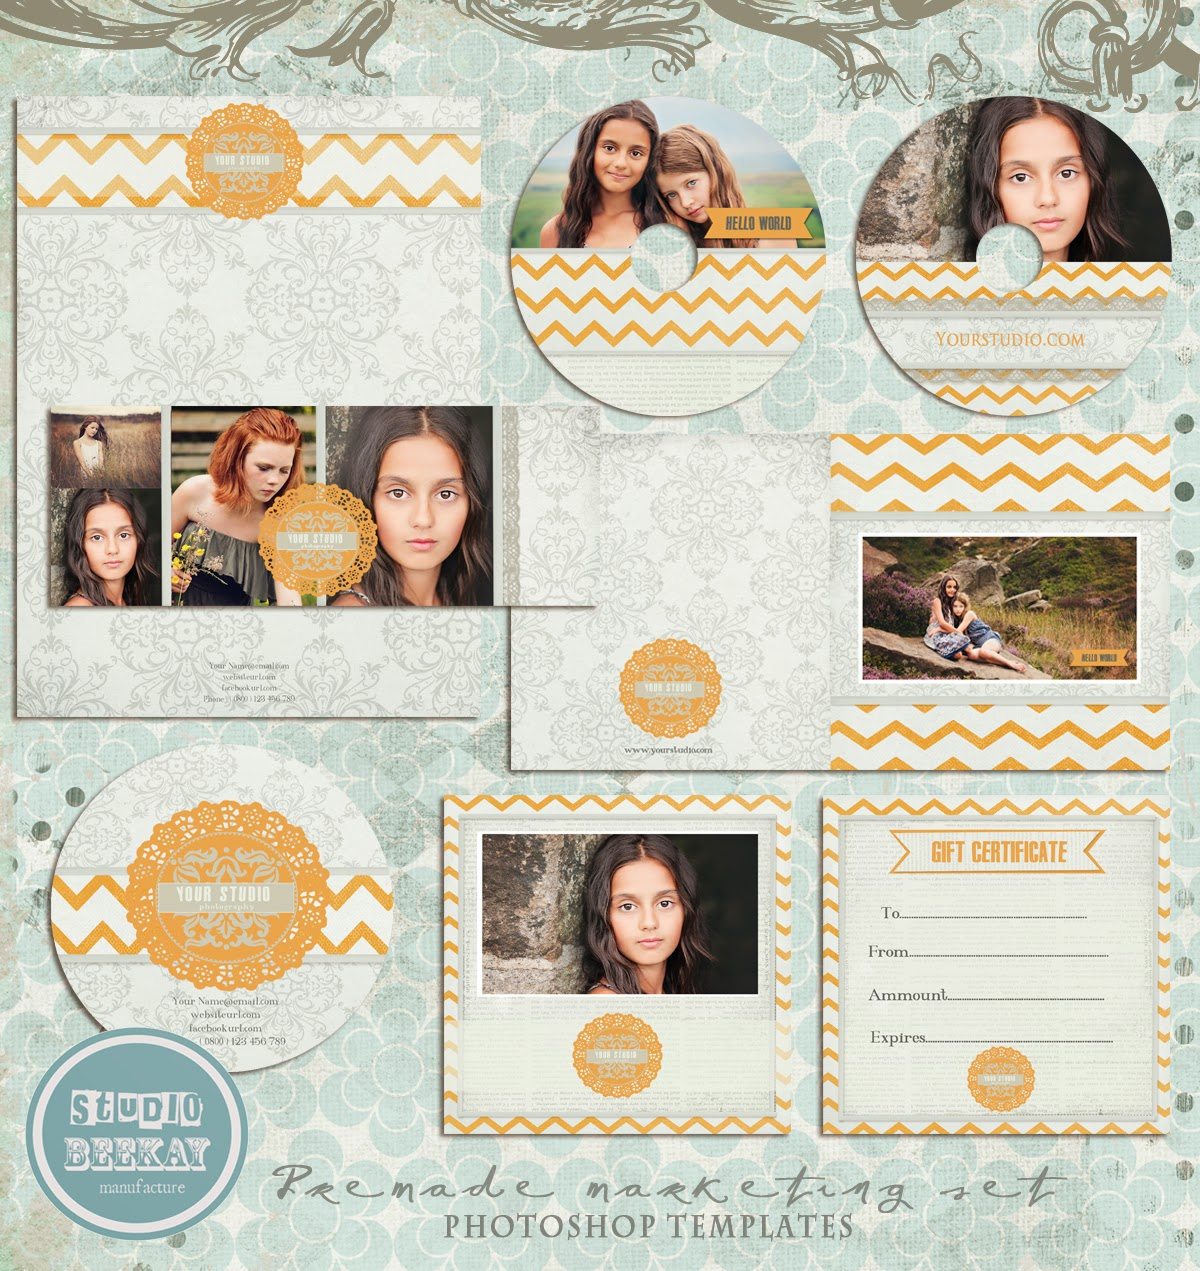 photoshop templates for pro photographers premade marketing set